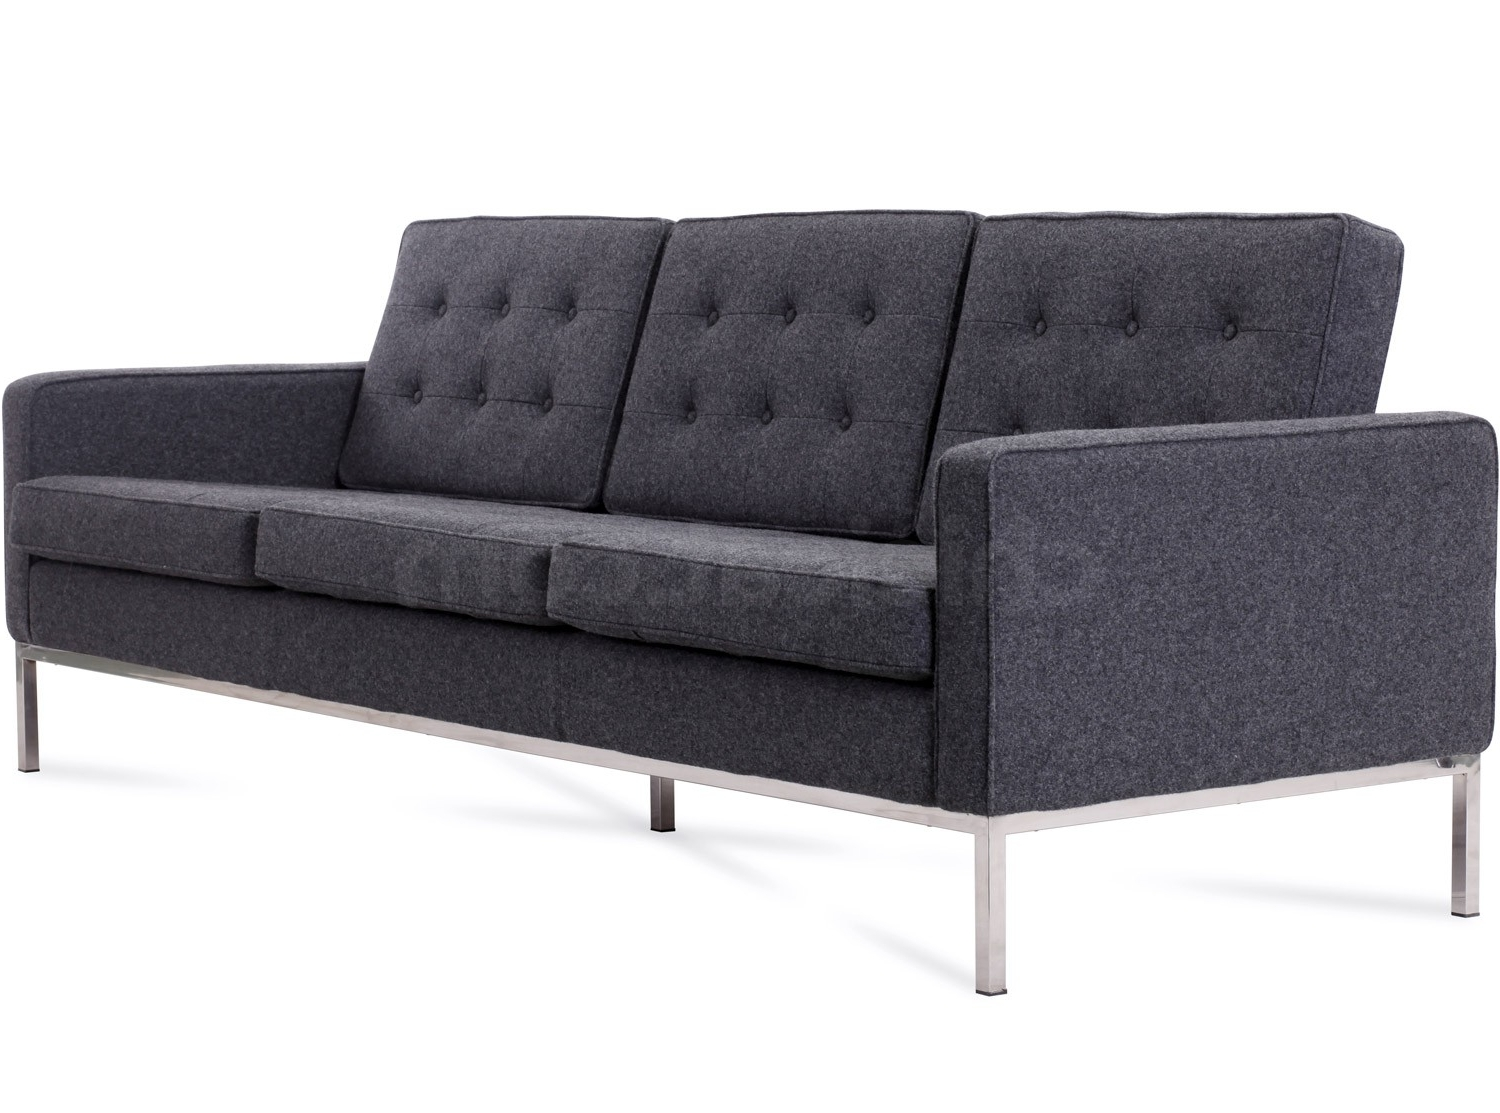 Florence Knoll 3 Seater Sofas Pertaining To Popular Florence Knoll Sofa 3  Seater Wool (Platinum